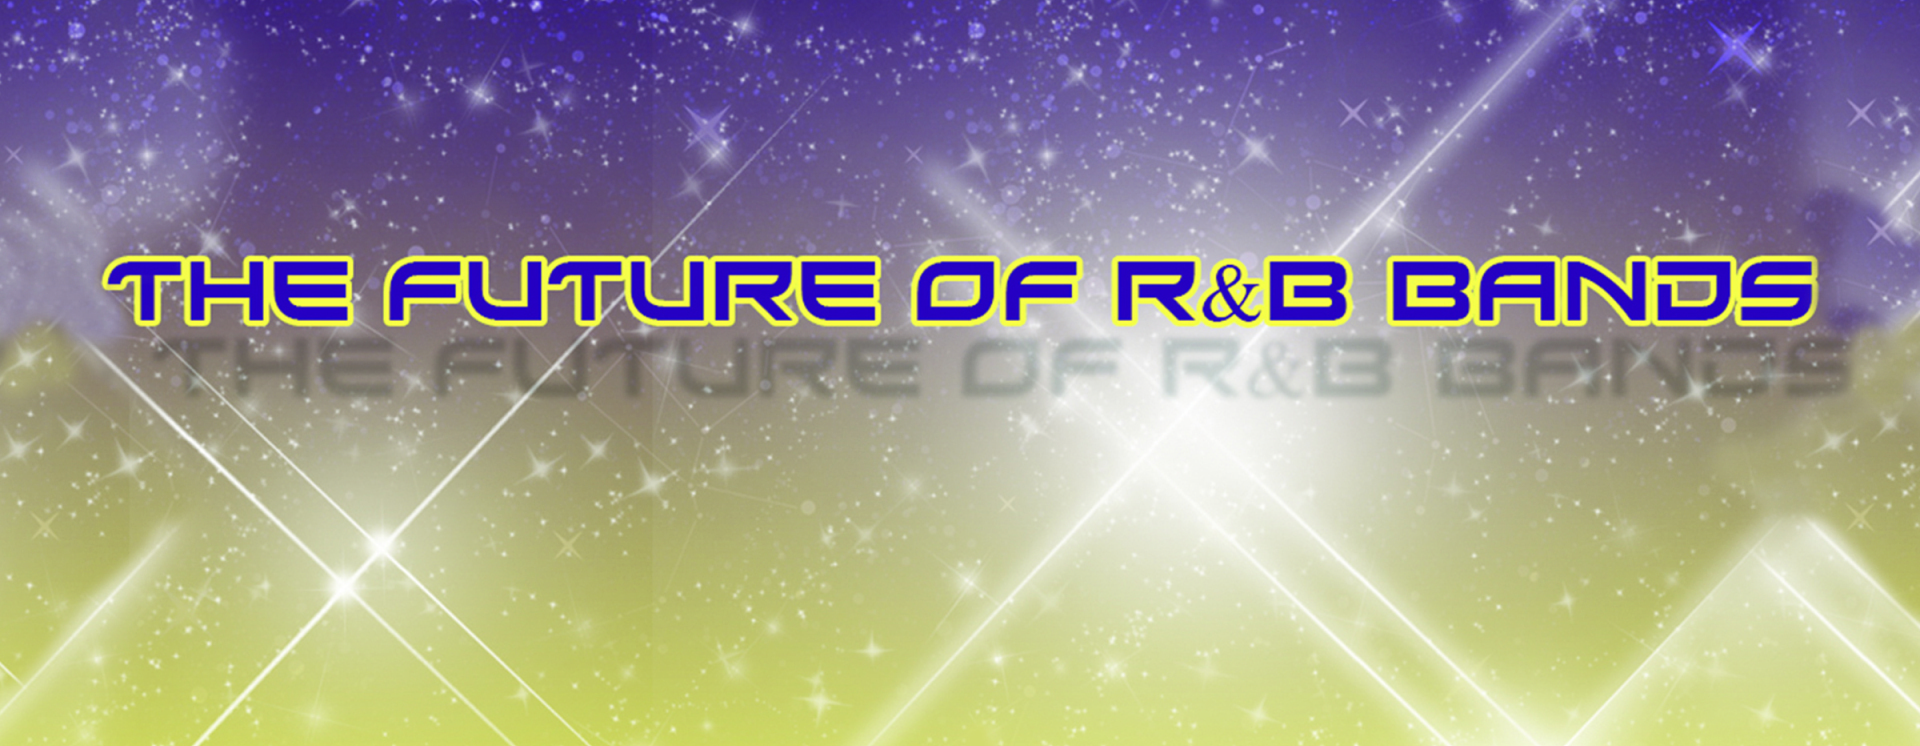 1421788015 future of r b band flyer copy